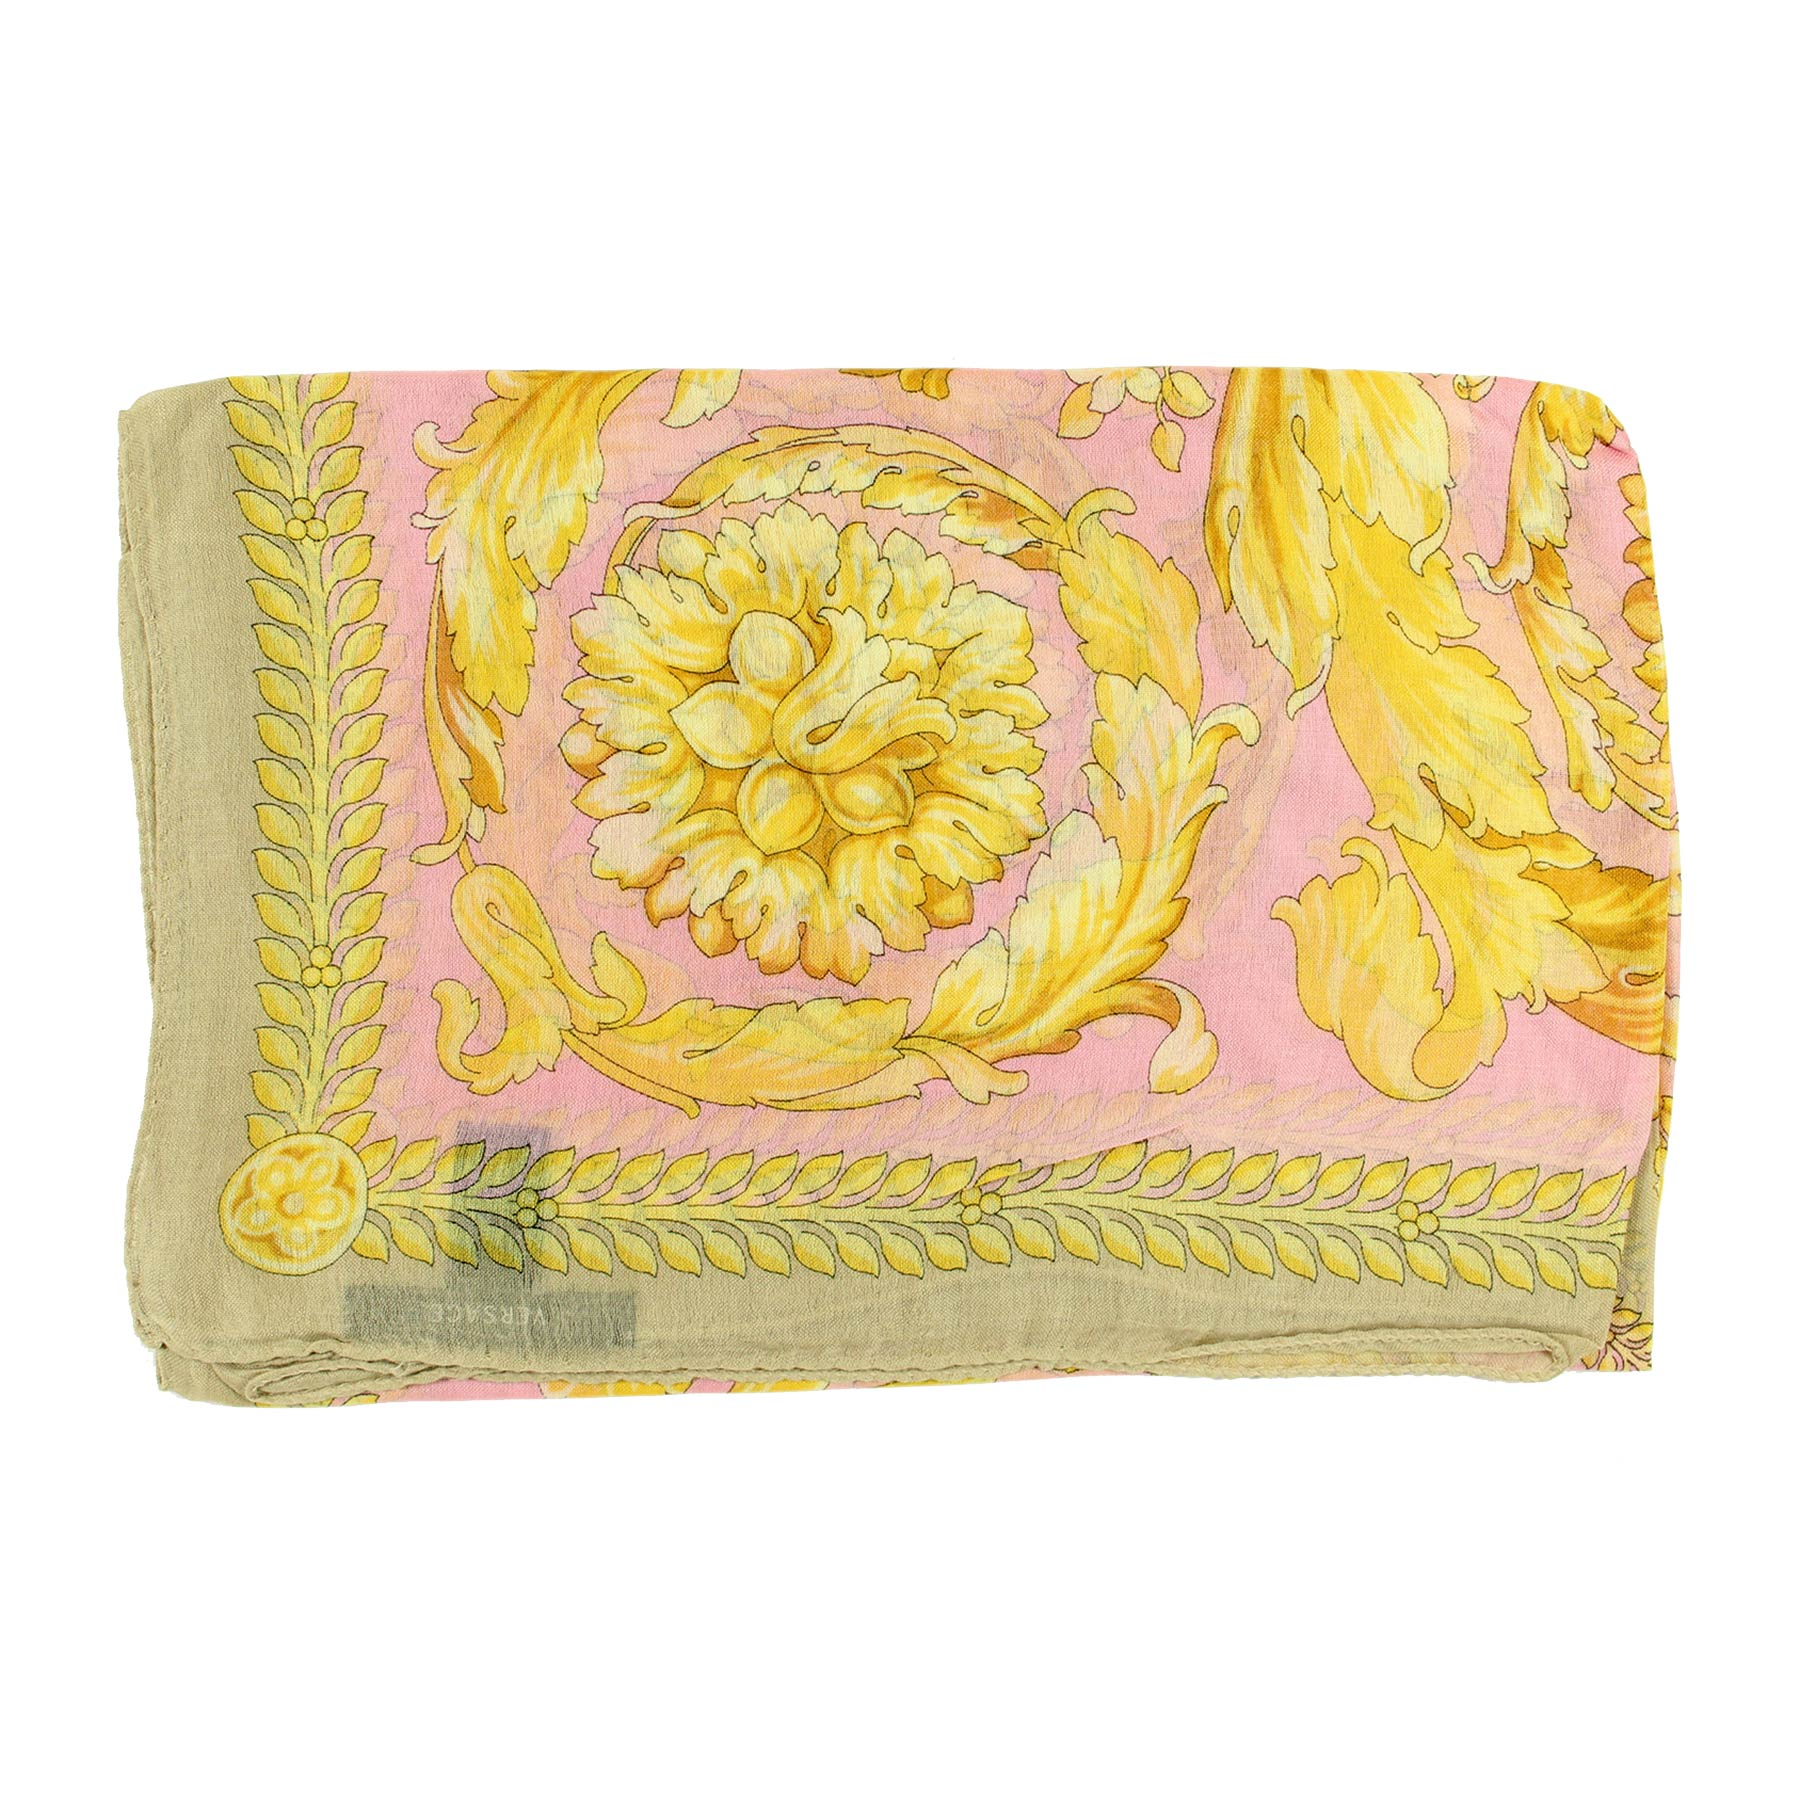 Versace Scarf Pink Taupe Gold Modal Cashmere Extra Large Square Scarf